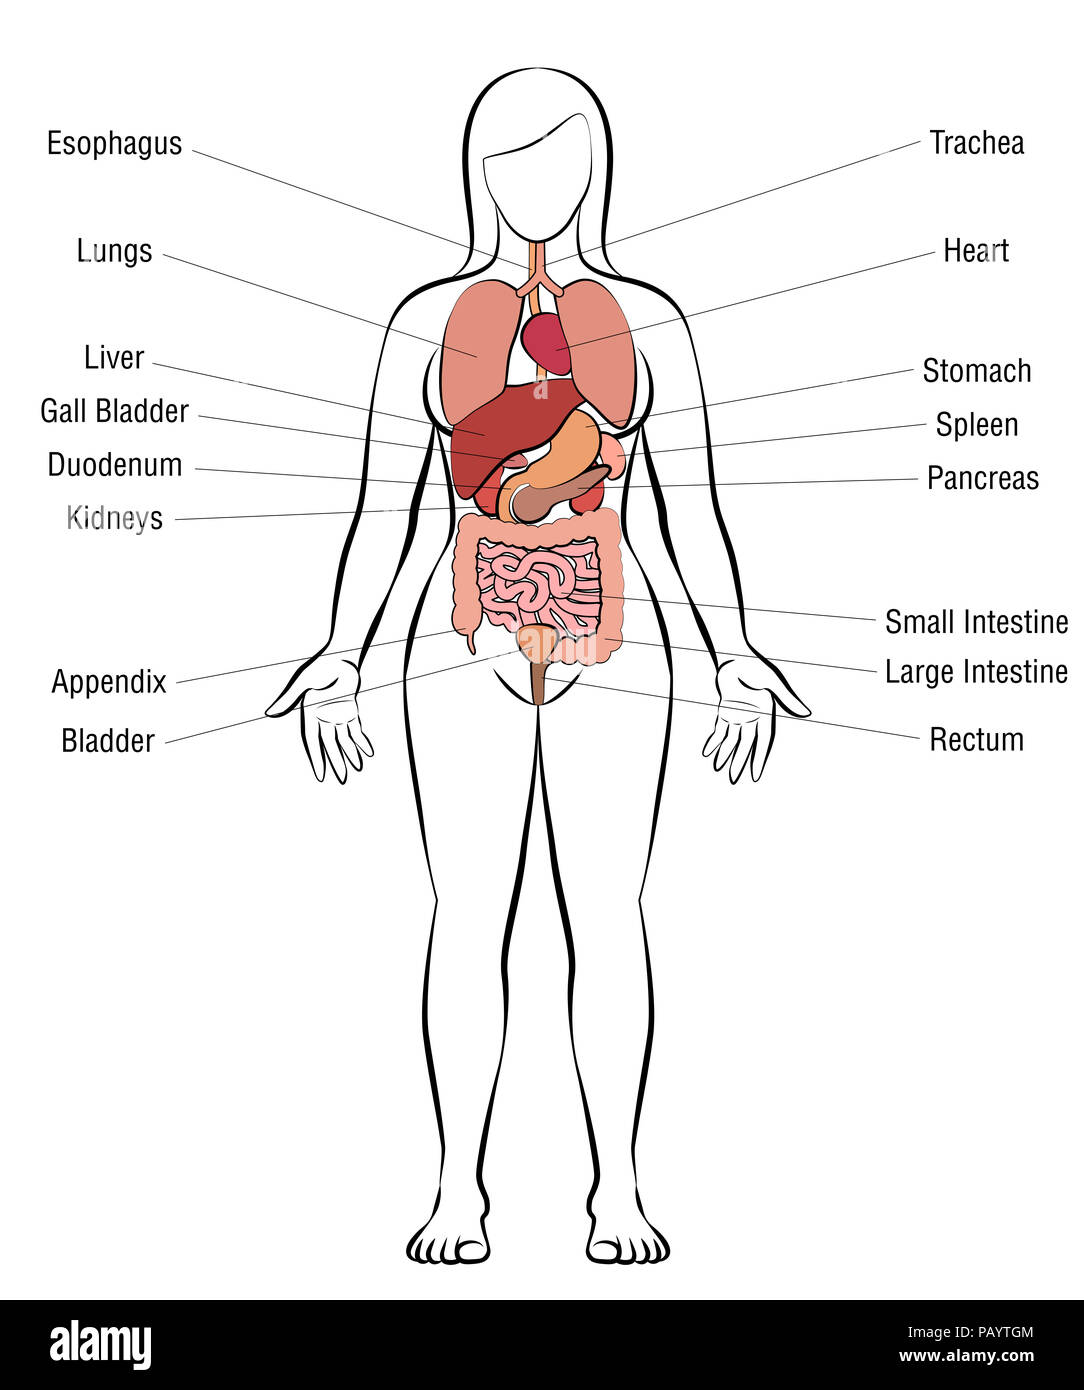 Illustration Female Internal Organs Stockfotos & Illustration Female ...